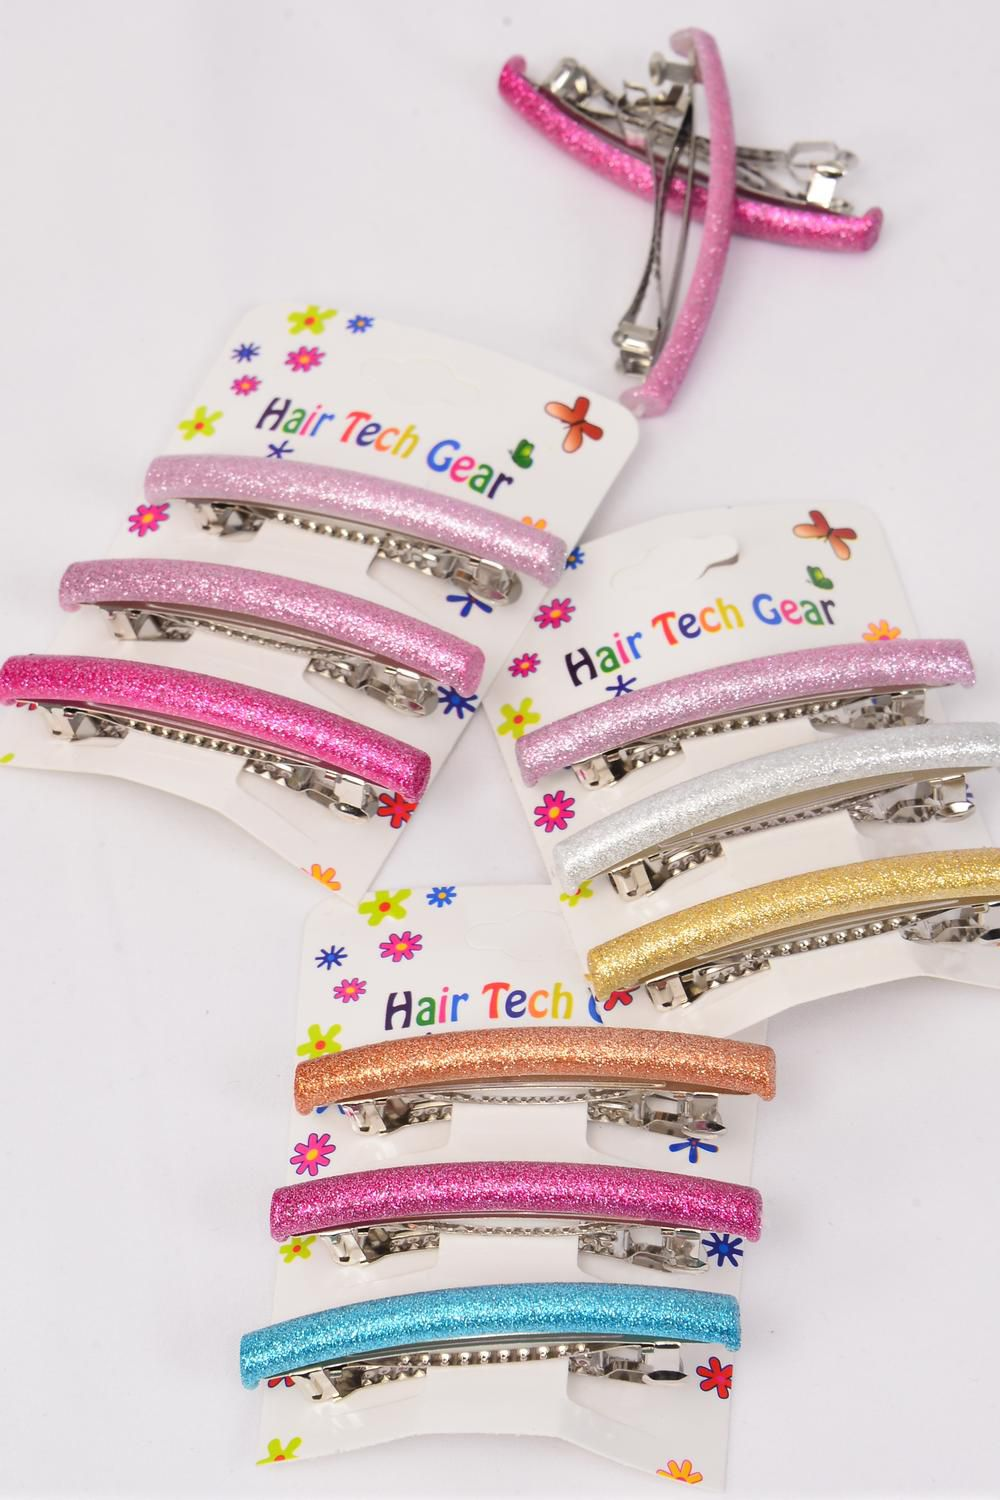 Hair Clip 36 pcs Metallic 6 cm Multi Inner Pack of 3 /DZ **French Clip** Size-6 cm,4 of each Color Asst,Individual Hang Card & OPP Bag & UPC Code,3 pcs per Card,12 Card=Dozen